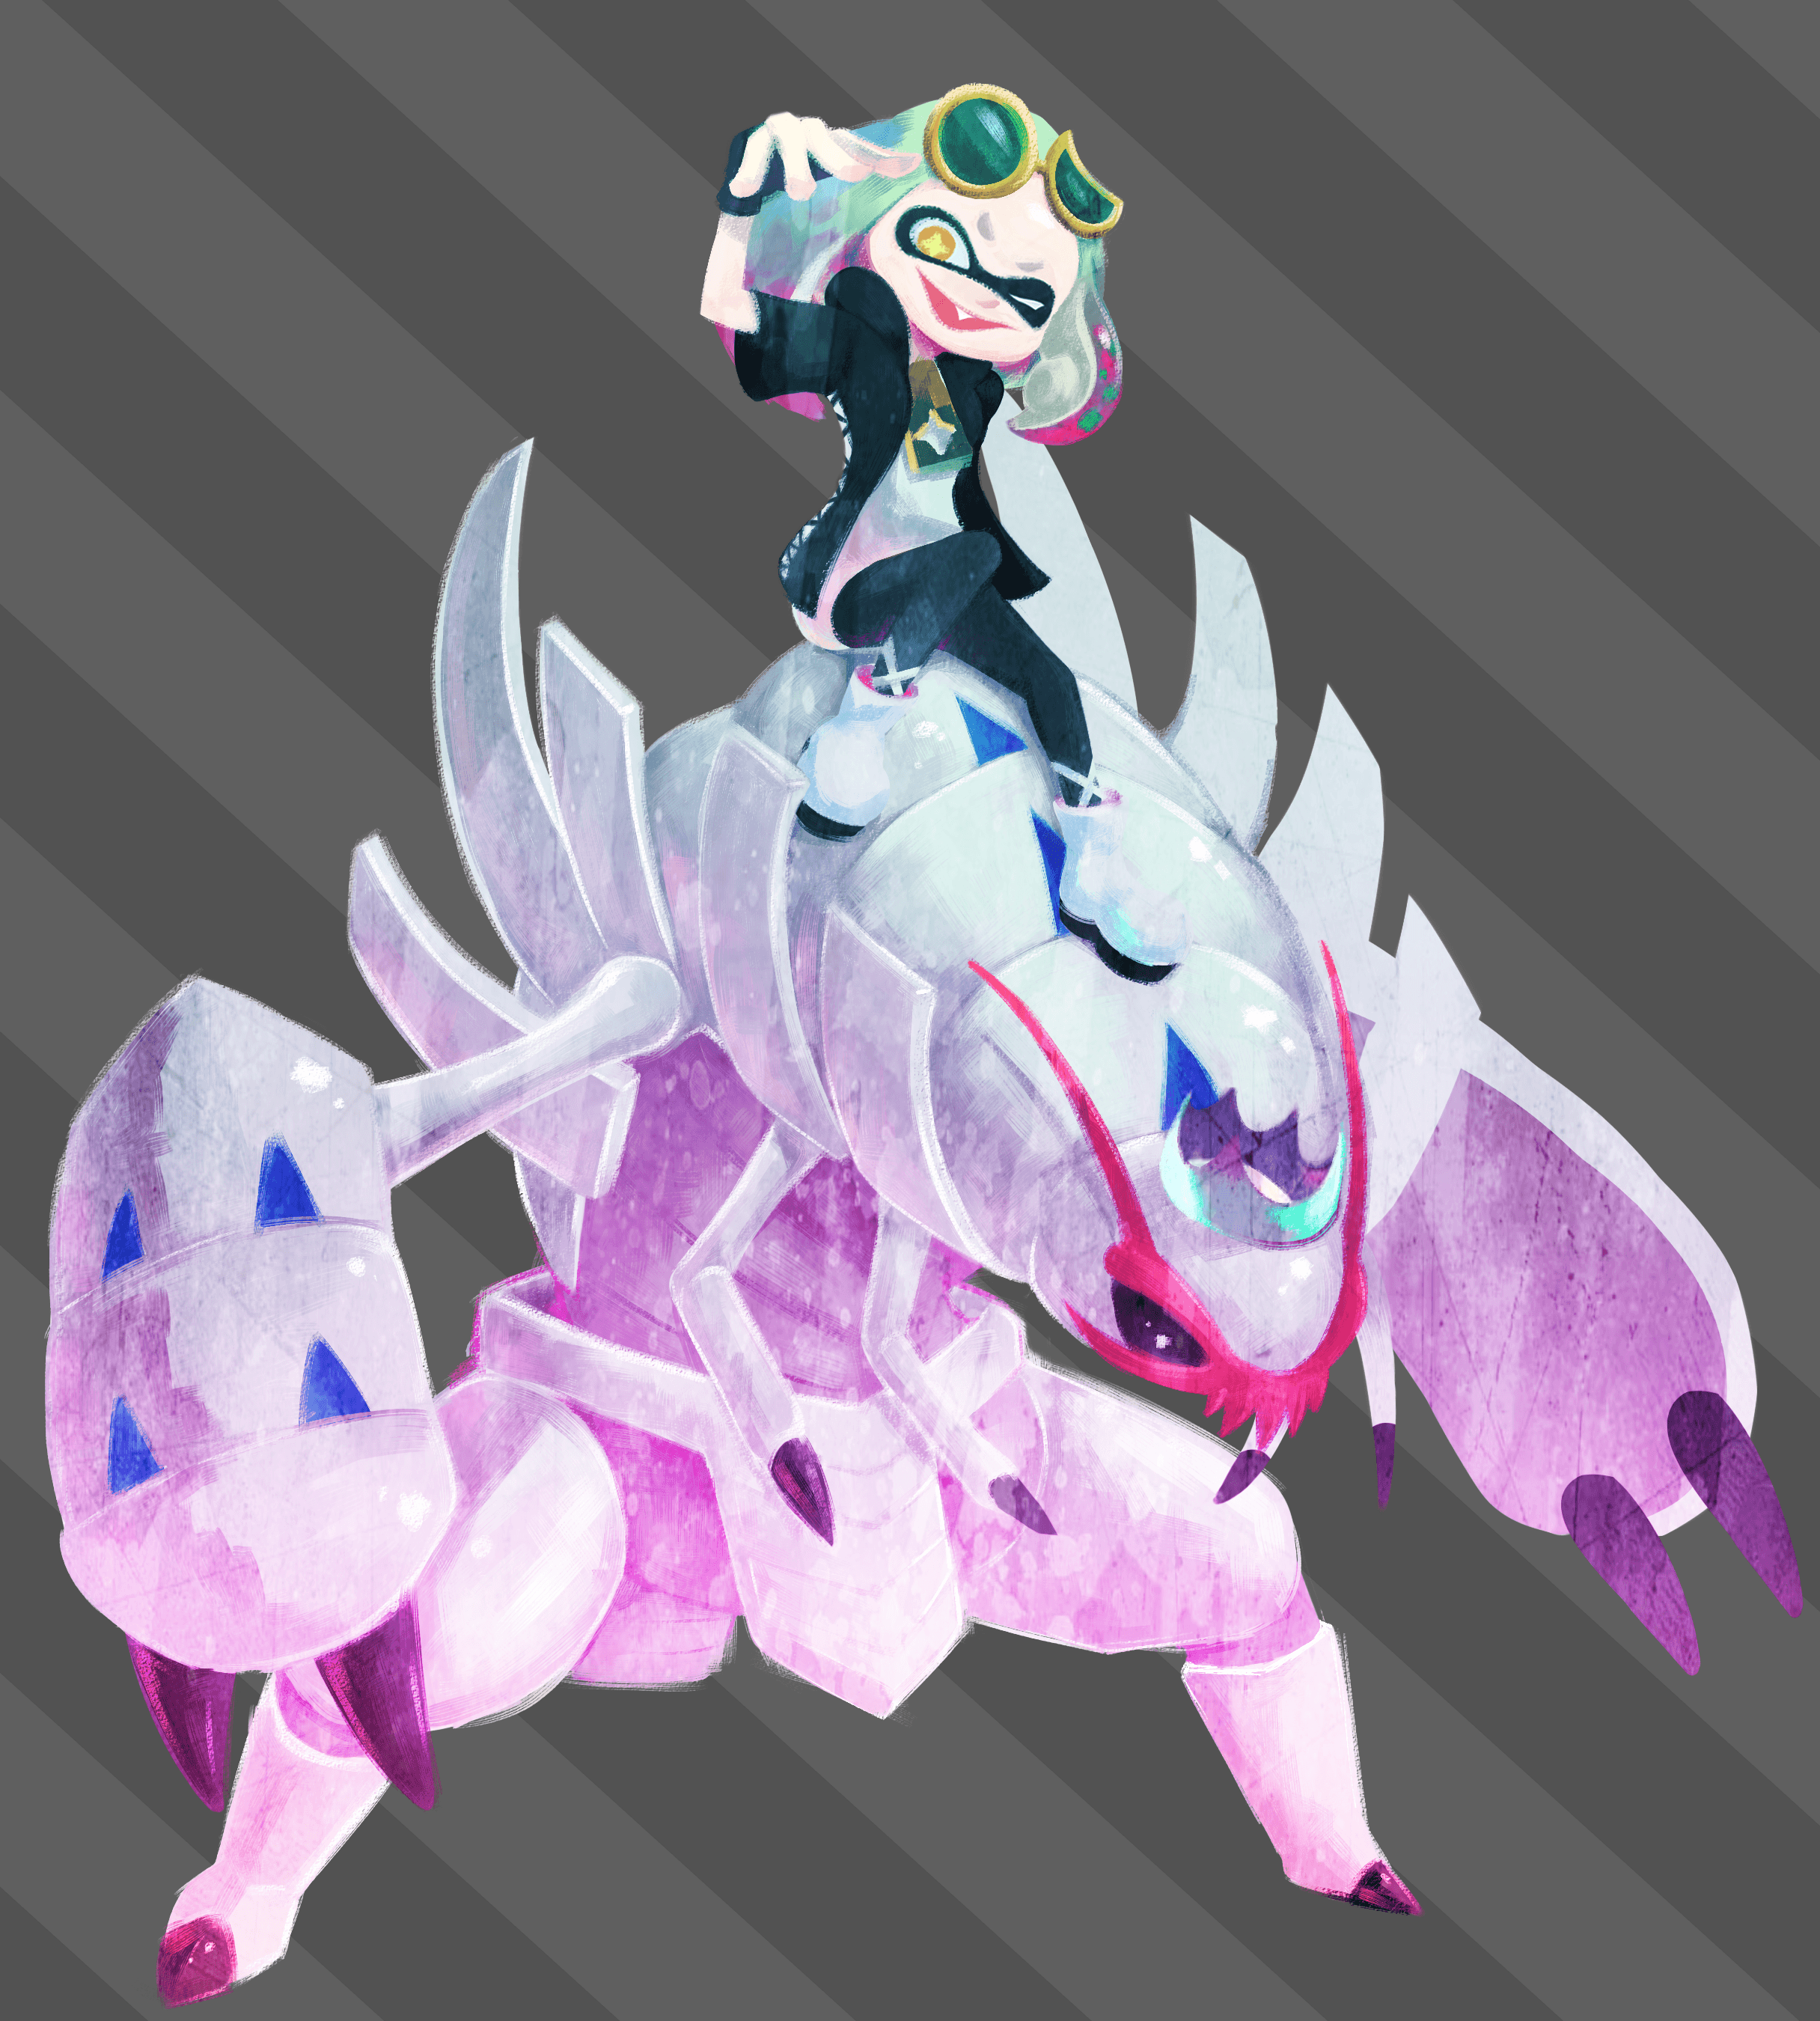 Old drawing of Pearl and Golisopod, figured this sub would